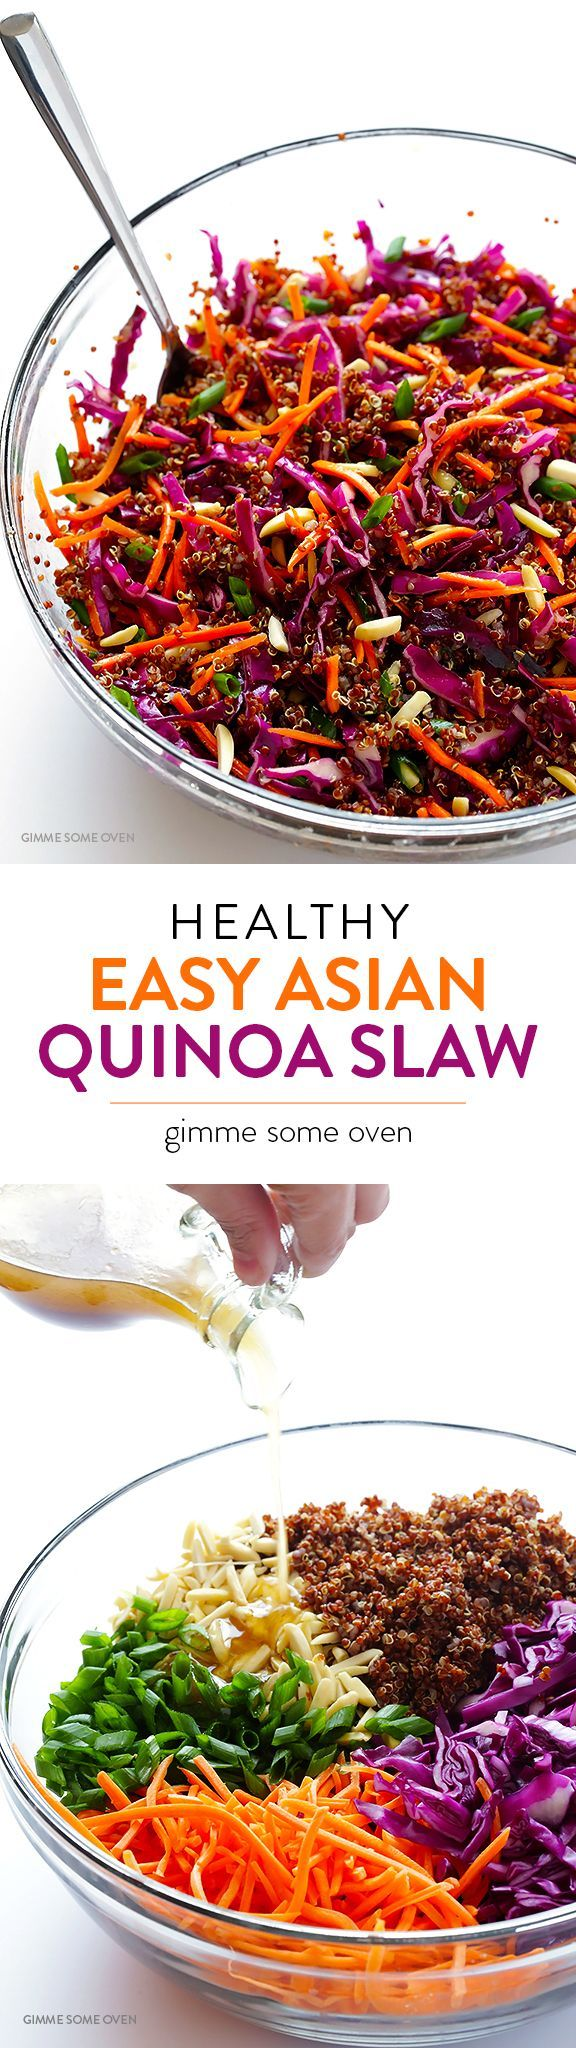 Easy Asian Quinoa Salad — quick and easy to make, full of great flavor, and naturally vegan and gluten-free!